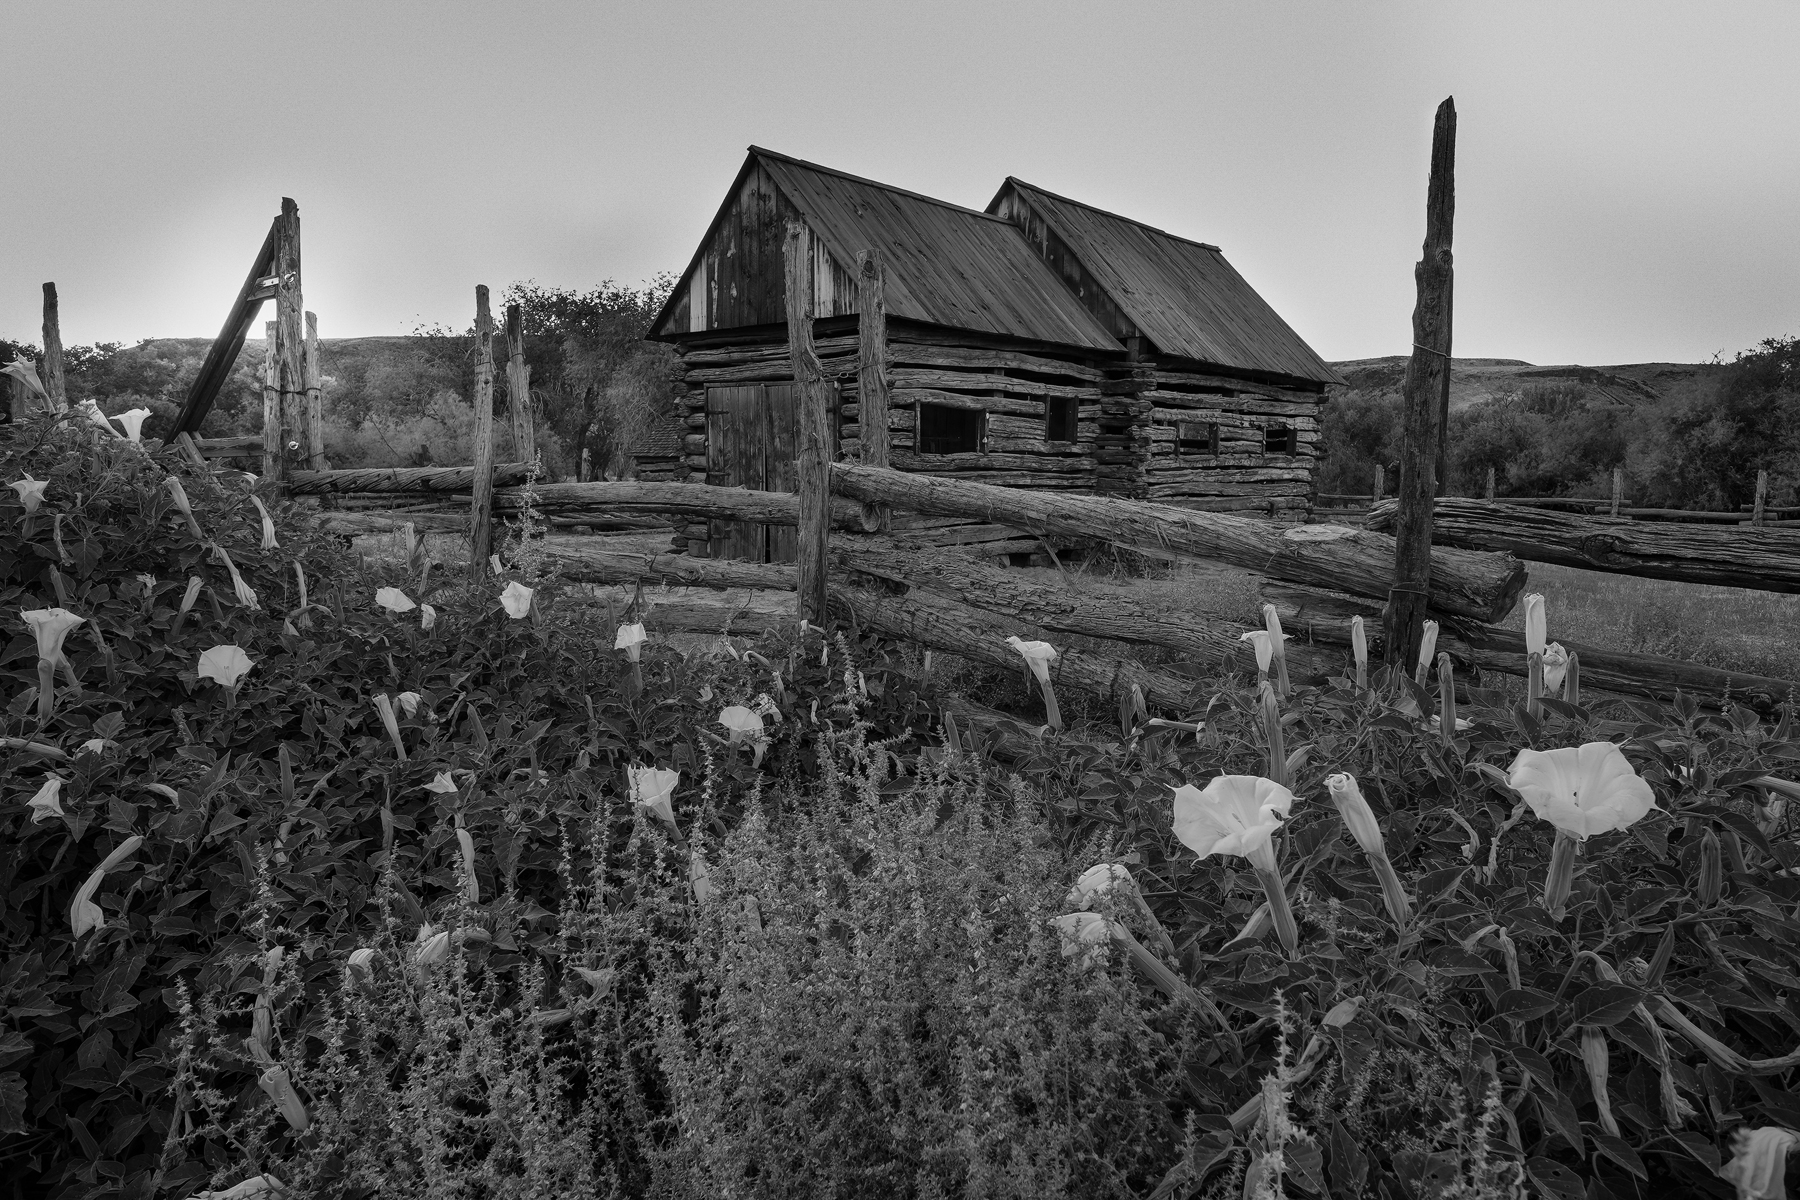 Datura and Cabin • Grafton Ghost Town, Springdale, Utah. Fuji X-T2 and a Fujinon XF10-24mm f4 OIS at 10mm. Image exposed at ISO 200 at f13 for 1/100 of a second.